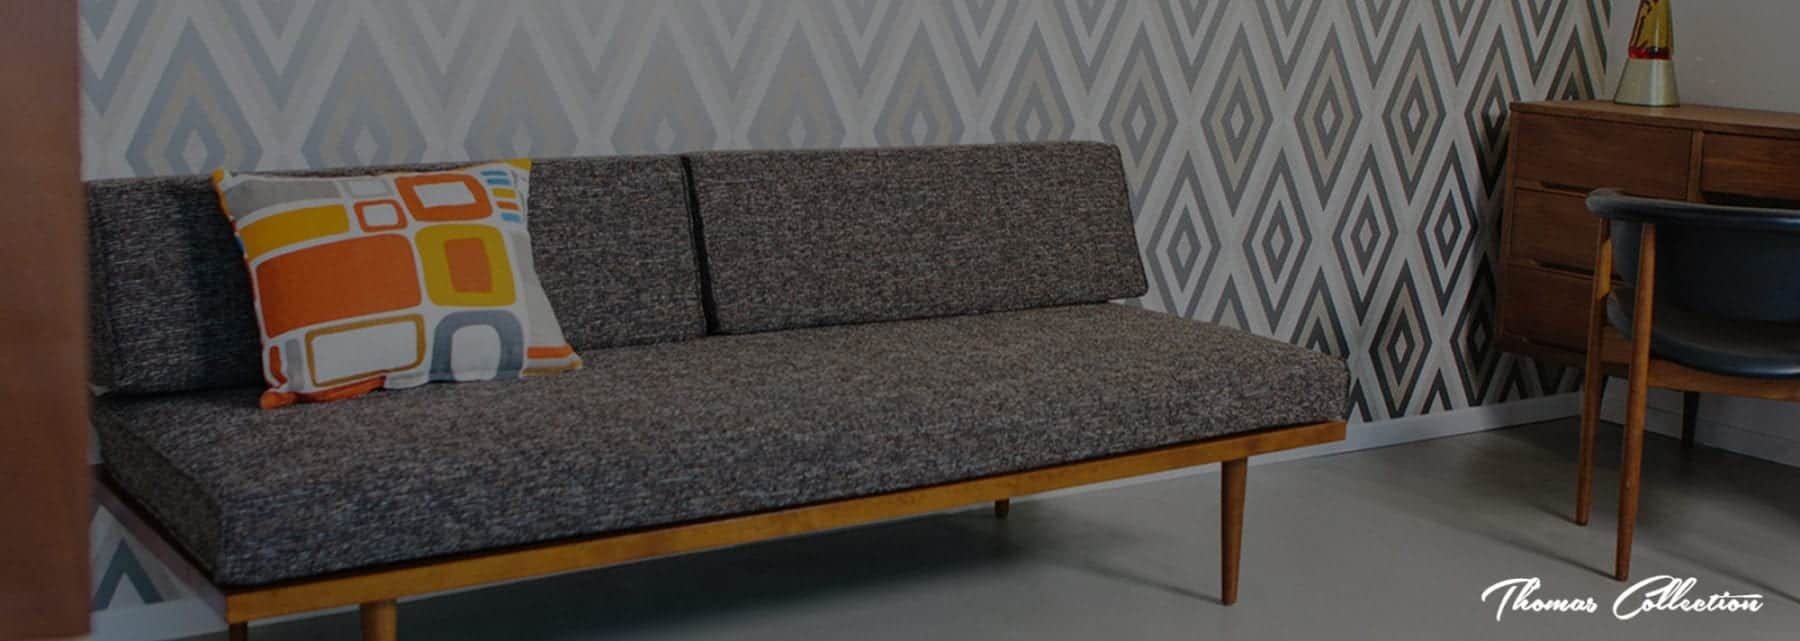 Astonishing Mid Century Modern Daybed Sofa Mcm Daybed Handmade In Alphanode Cool Chair Designs And Ideas Alphanodeonline